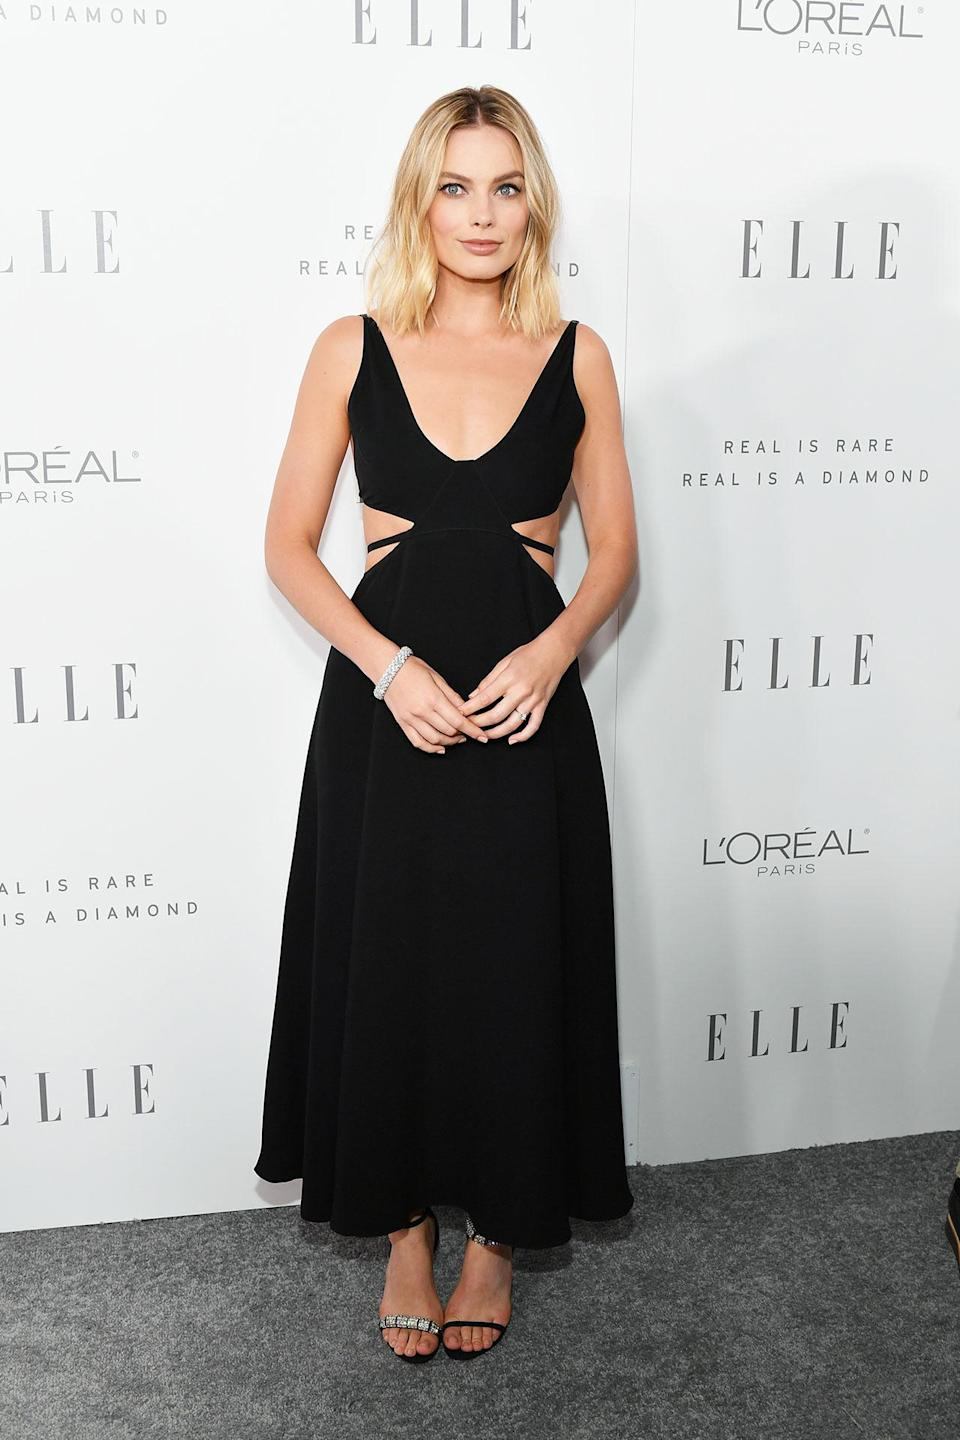 """<h2>In Calvin Klein</h2> <p>At <i>Elle'</i>s 24th Annual Women in Hollywood Celebration in Los Angeles, 2017</p> <h4>Getty Images</h4> <p> <strong>Related Articles</strong> <ul> <li><a rel=""""nofollow noopener"""" href=""""http://thezoereport.com/fashion/style-tips/box-of-style-ways-to-wear-cape-trend/?utm_source=yahoo&utm_medium=syndication"""" target=""""_blank"""" data-ylk=""""slk:The Key Styling Piece Your Wardrobe Needs"""" class=""""link rapid-noclick-resp"""">The Key Styling Piece Your Wardrobe Needs</a></li><li><a rel=""""nofollow noopener"""" href=""""http://thezoereport.com/fashion/shopping/everything-need-let-zoe-giveaway/?utm_source=yahoo&utm_medium=syndication"""" target=""""_blank"""" data-ylk=""""slk:Everything You Need From Our Let It Zoe Giveaway"""" class=""""link rapid-noclick-resp"""">Everything You Need From Our Let It Zoe Giveaway</a></li><li><a rel=""""nofollow noopener"""" href=""""http://thezoereport.com/beauty/celebrity-beauty/josephine-skriver-makeup-tutorial-video-vogue/?utm_source=yahoo&utm_medium=syndication"""" target=""""_blank"""" data-ylk=""""slk:A Victoria's Secret Model Shows Us How To Get Our Lips To Her Level"""" class=""""link rapid-noclick-resp"""">A Victoria's Secret Model Shows Us How To Get Our Lips To Her Level</a></li> </ul> </p>"""